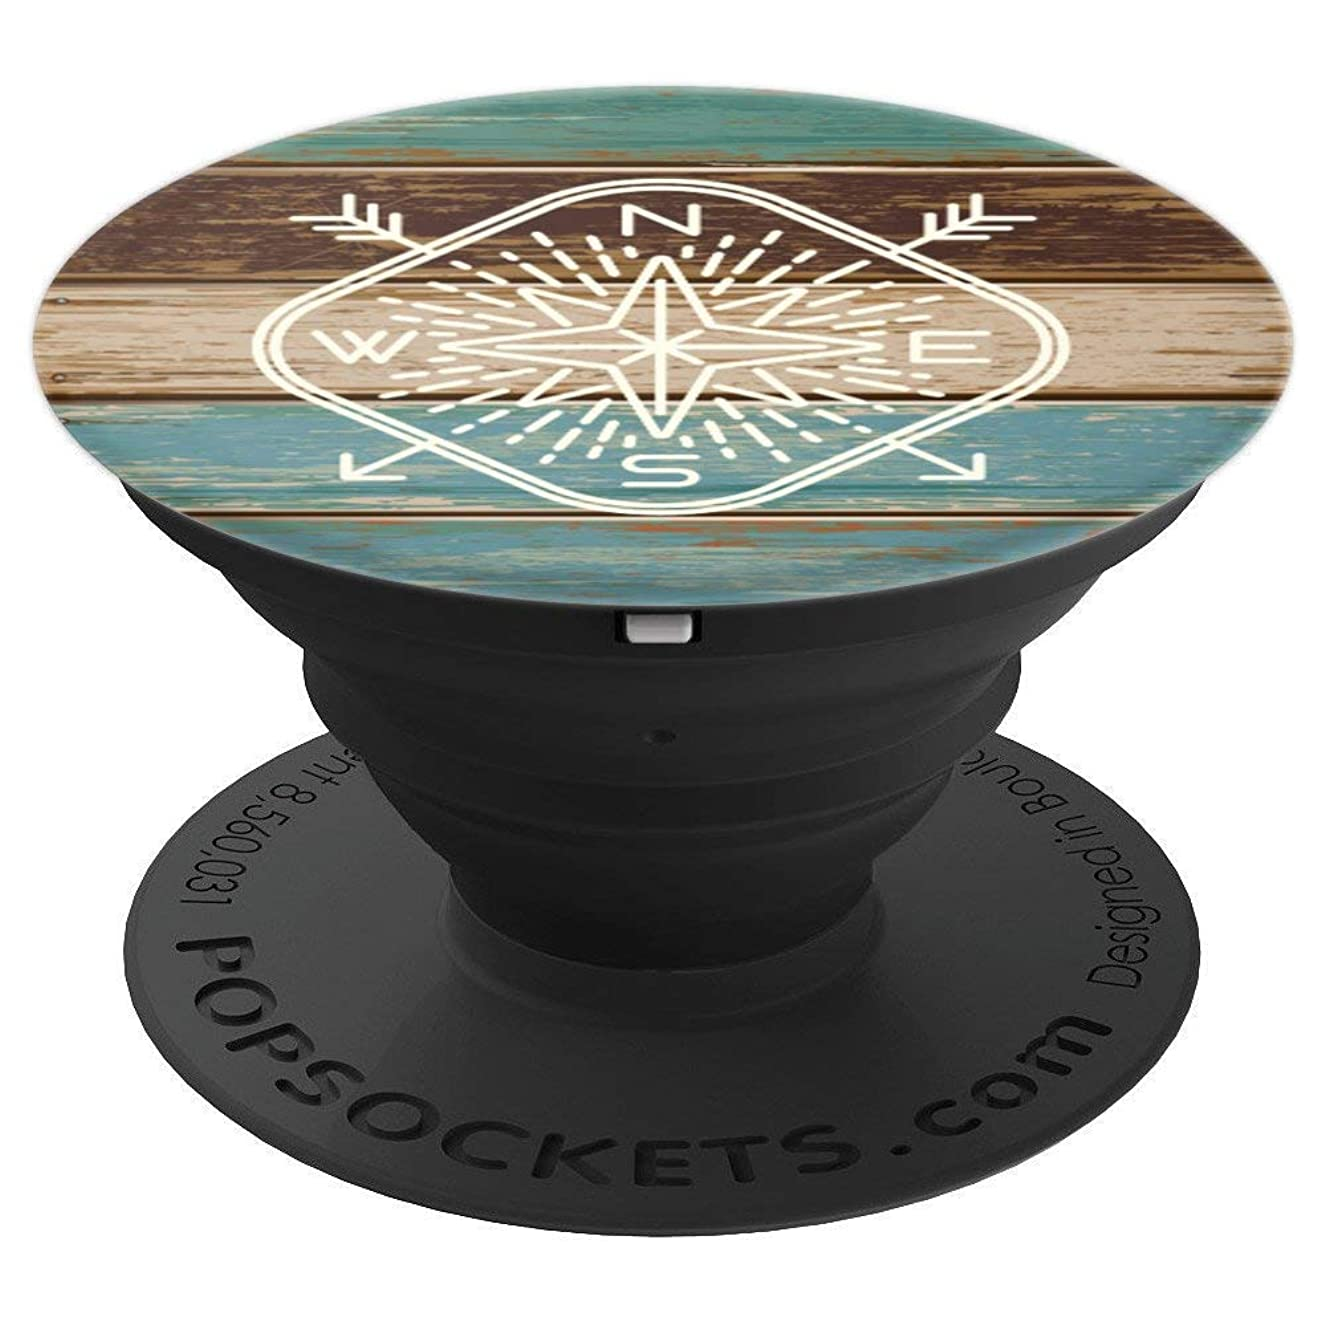 Adventure Compass Pattern - PopSockets Grip and Stand for Phones and Tablets xzjkcplojg8665